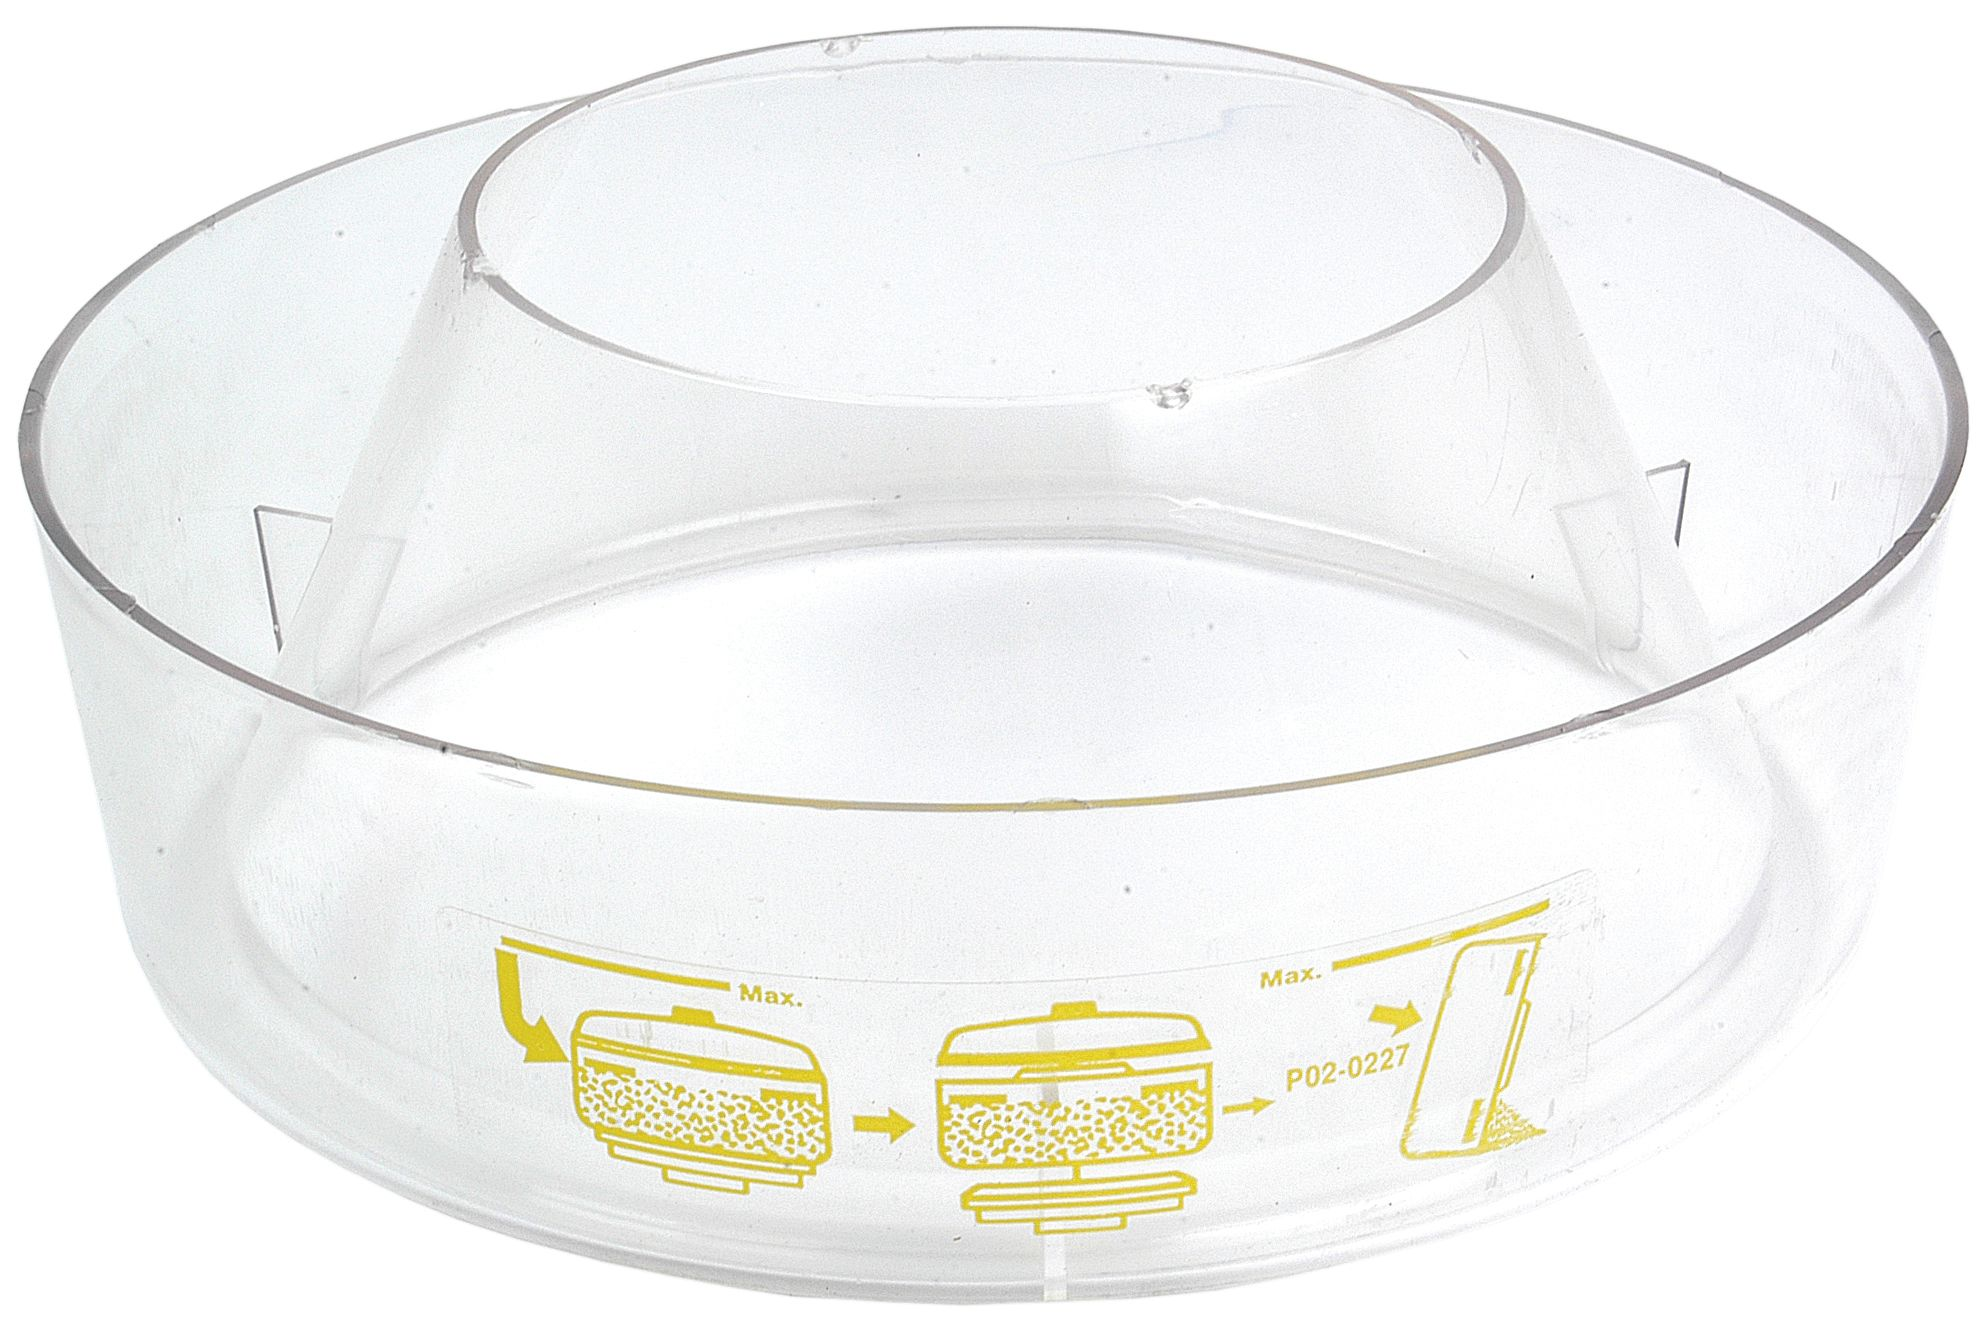 WHITE/OLIVER PRE CLEANER REPLACEMENT BOWLS 41398